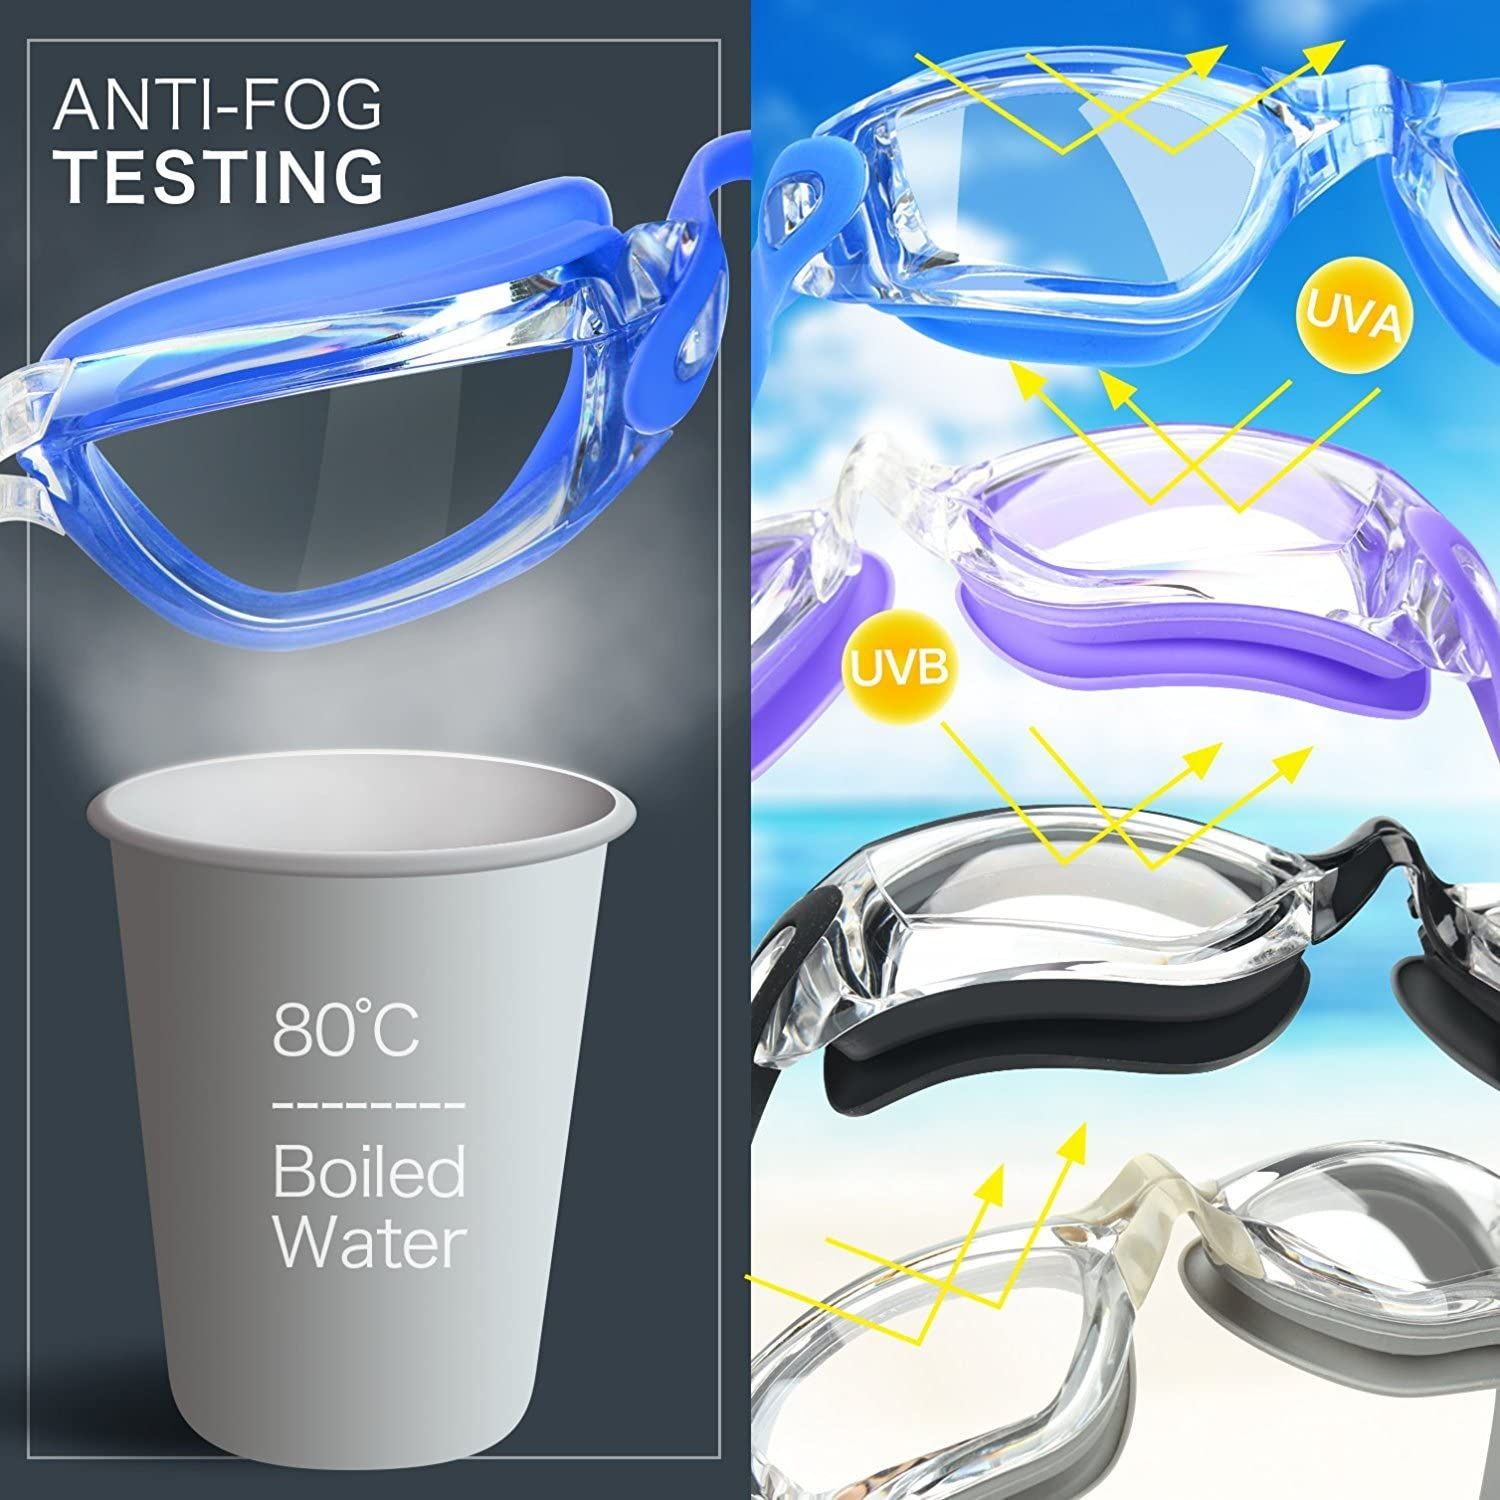 COOLOO Swim Goggles, Pack of 2, Swimming Goggles for Adult Men Women Youth Kids Child, Triathlon Equipment, with Mirrored & Clear Anti-Fog, Waterproof, UV 400 Protection Lenses, Made : Sports & Outdoors